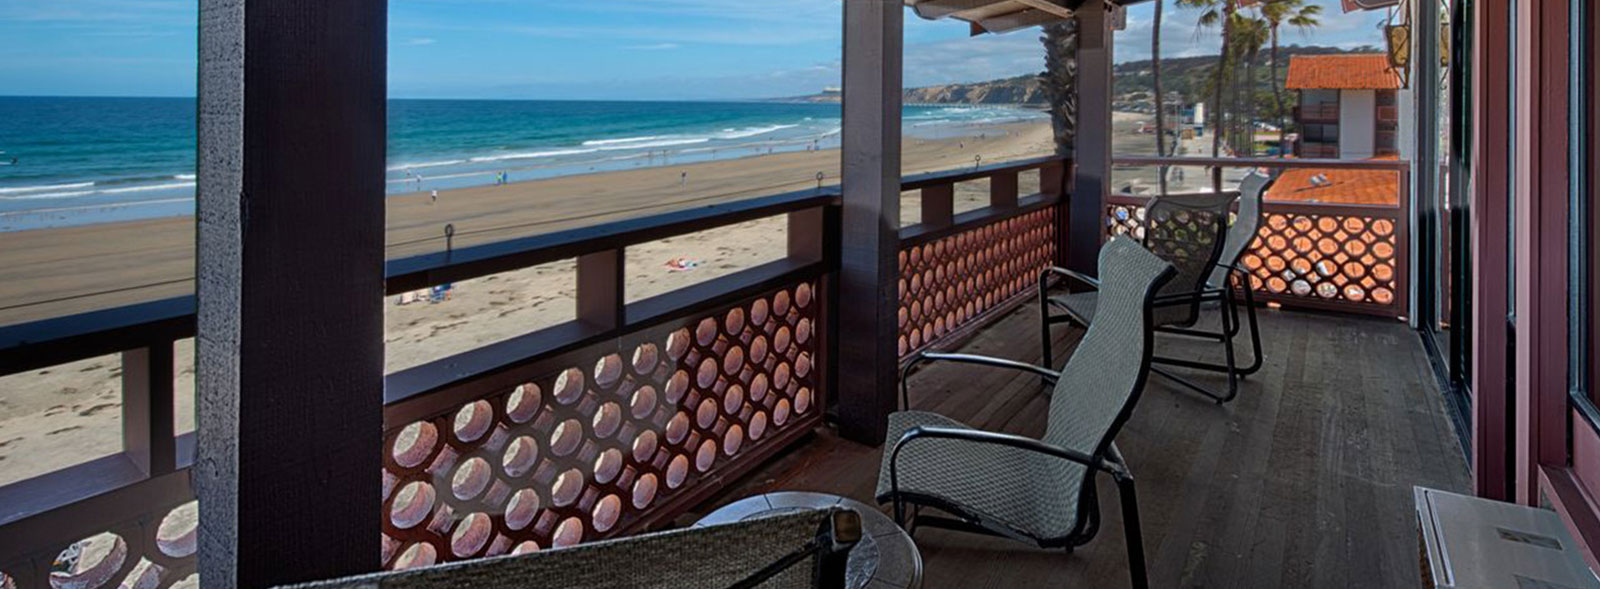 Save On Mid Week Stays at La Jolla Shores Hotel